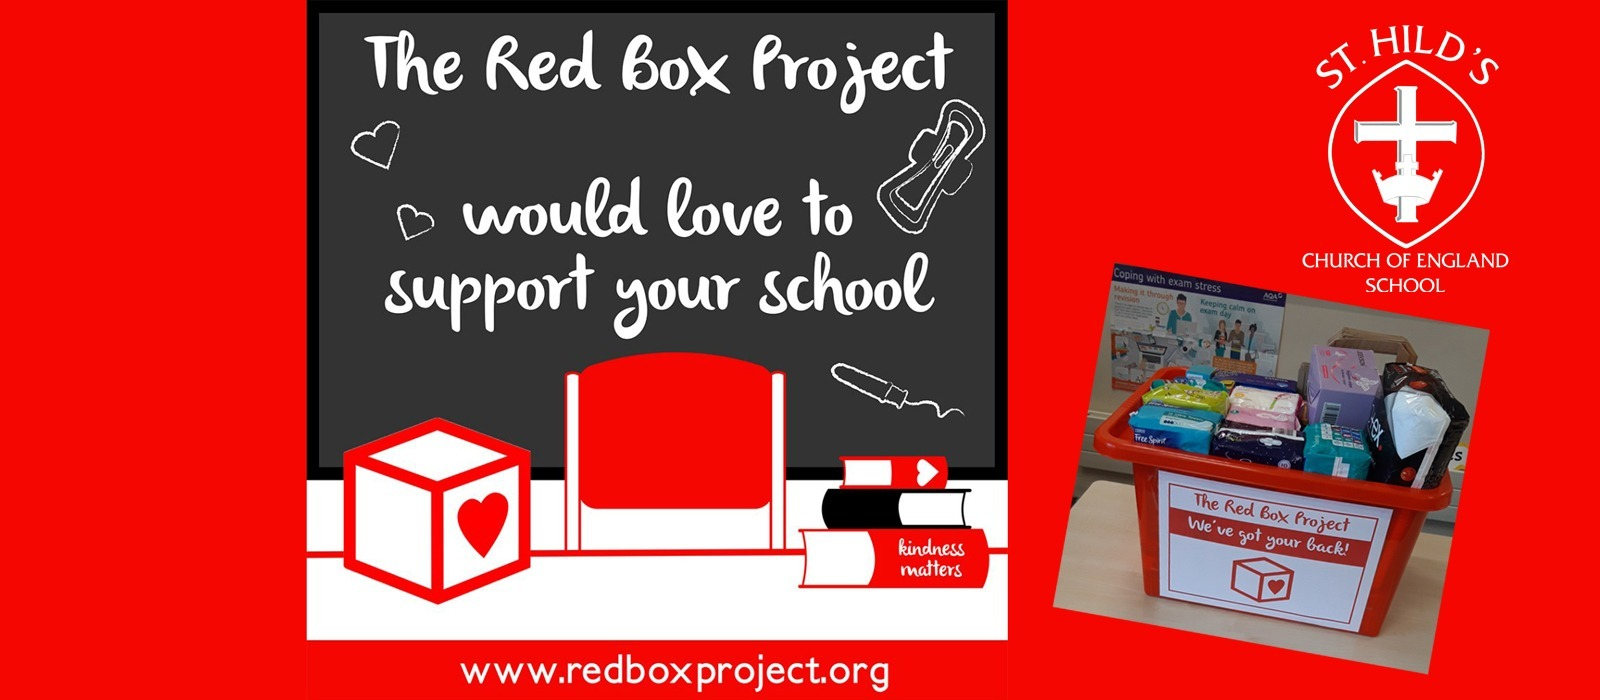 Supporting image for St. Hild's School Joins the Red Box Project